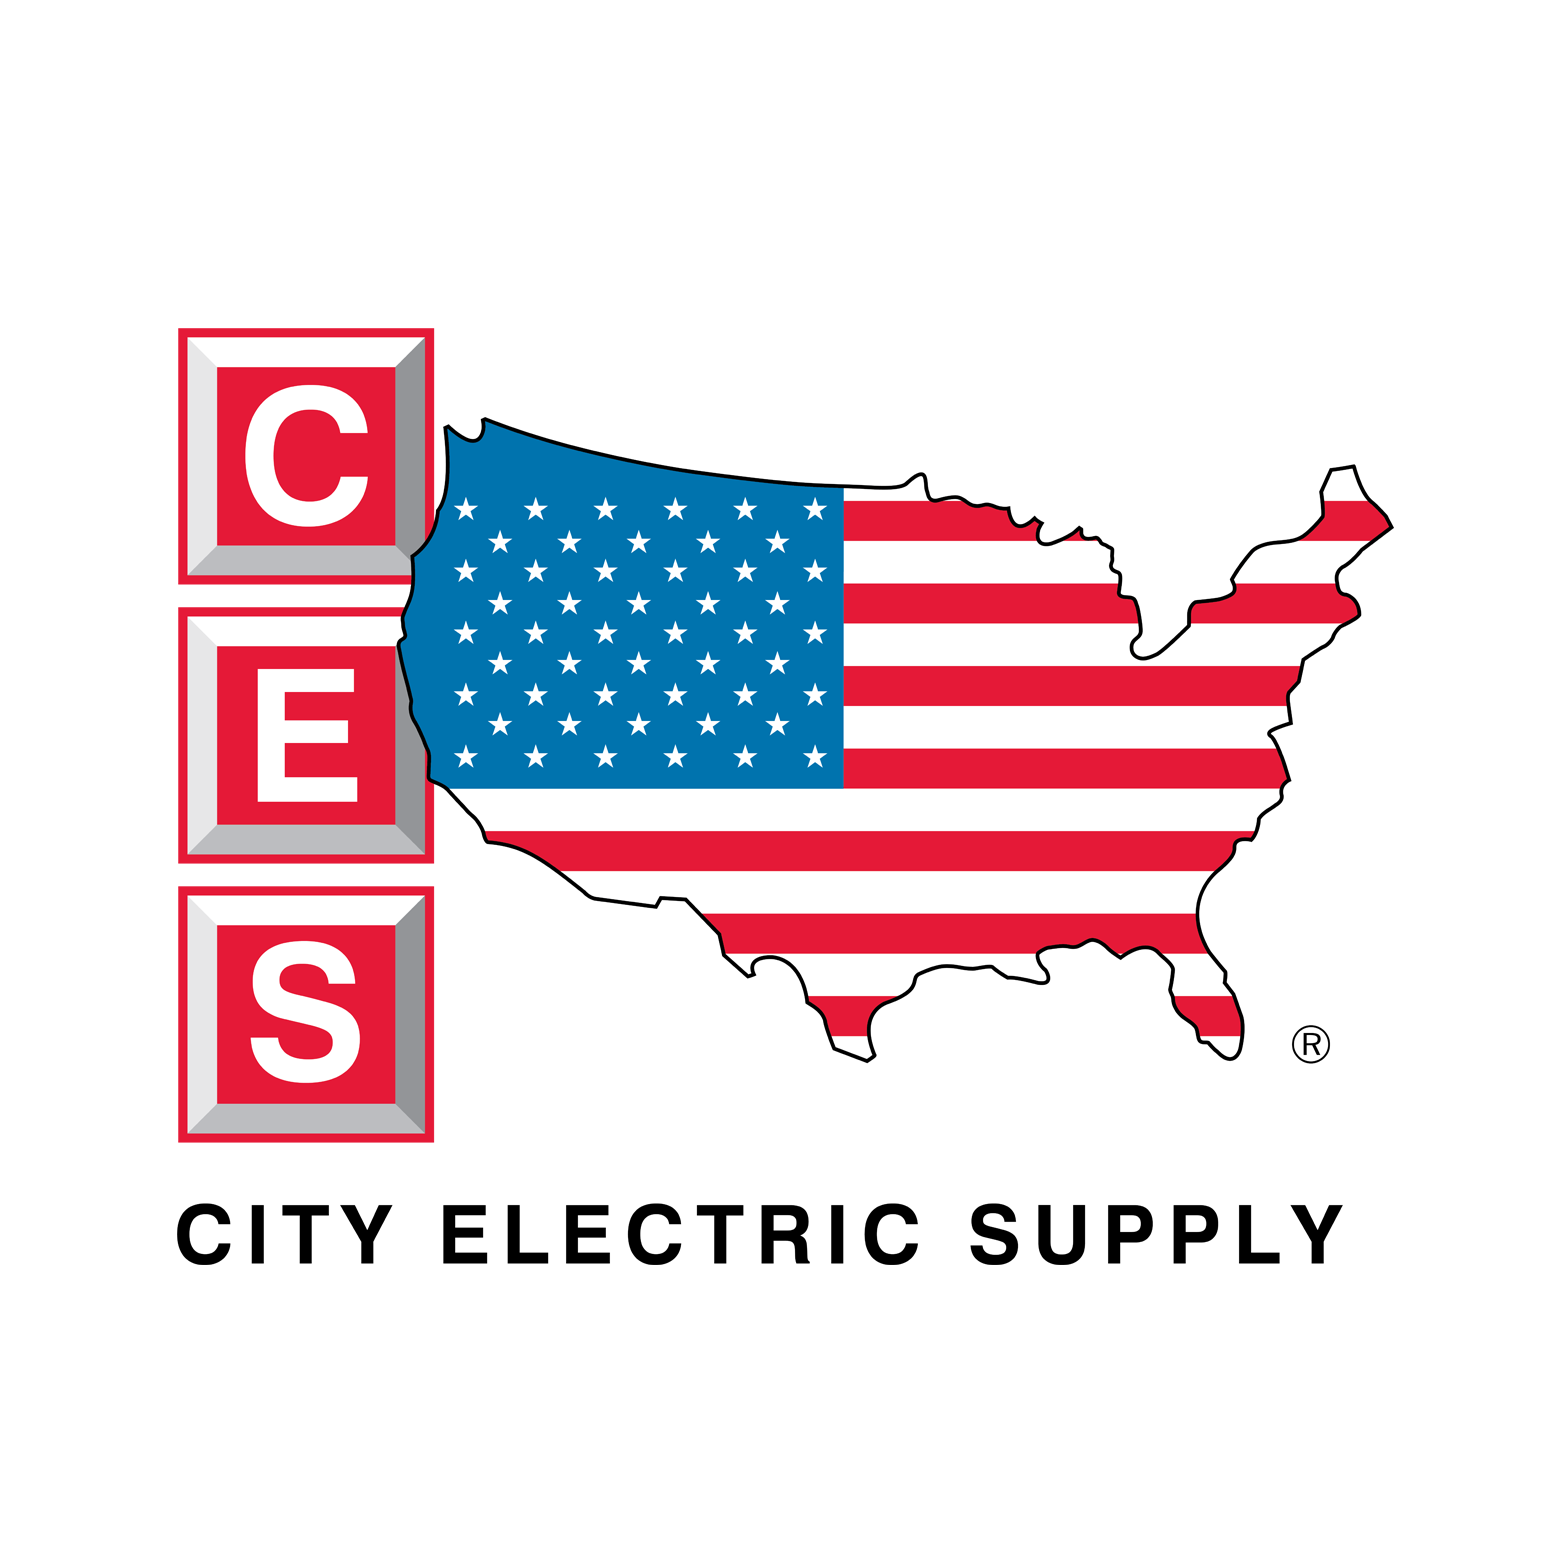 City Electric Supply Philadelphia Central